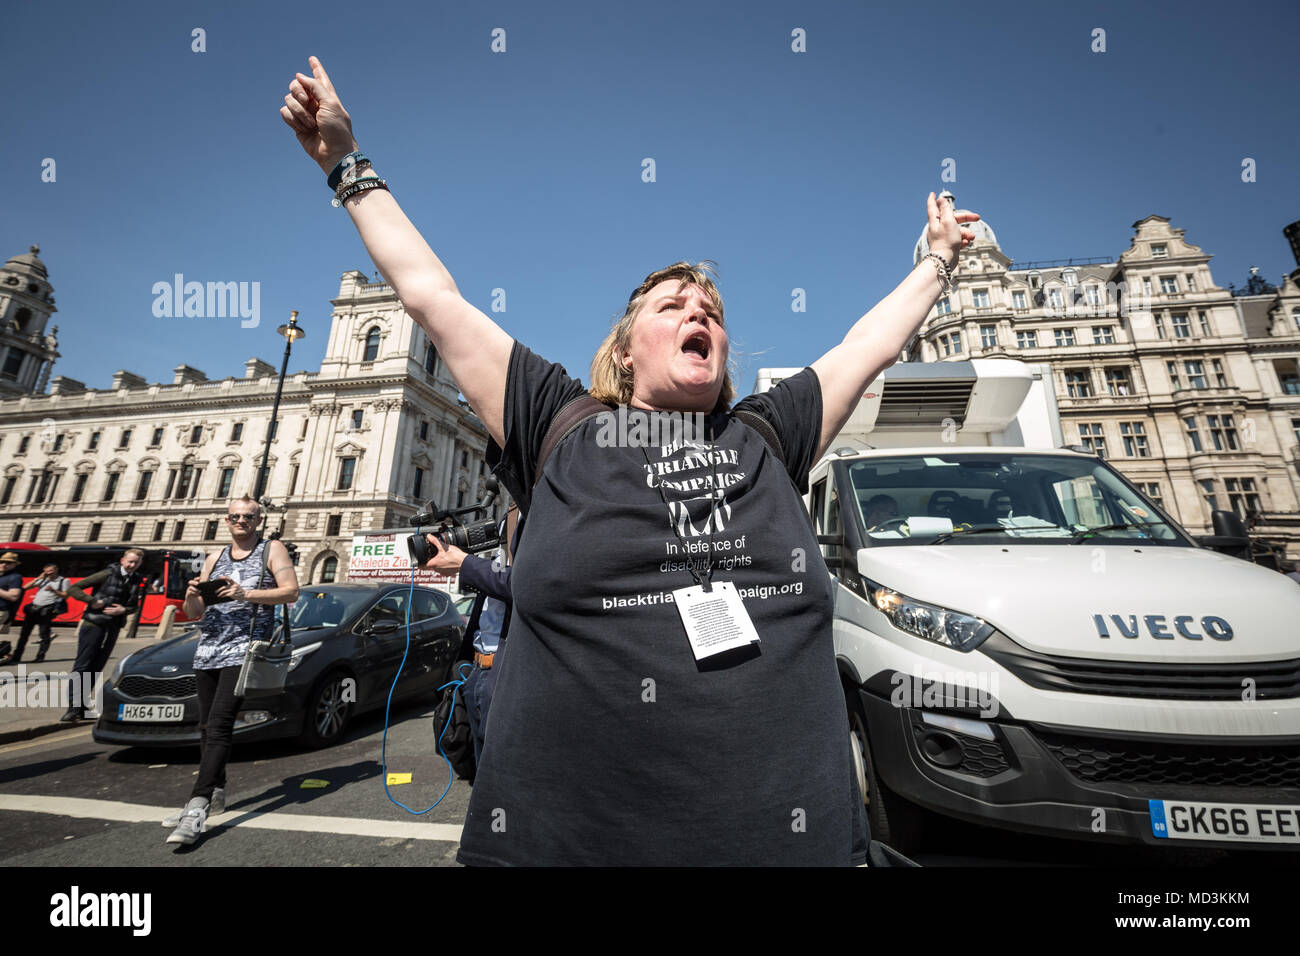 London, UK. 18th April, 2018. Campaigners from DPAC (Disabled People Against Cuts), MHRN (Mental Health Resistance Network) and Black Triangle block the road near Westminster's Parliament buildings on their national day of action in protest to demand the government scrap Universal Credit. Credit: Guy Corbishley/Alamy Live News - Stock Image